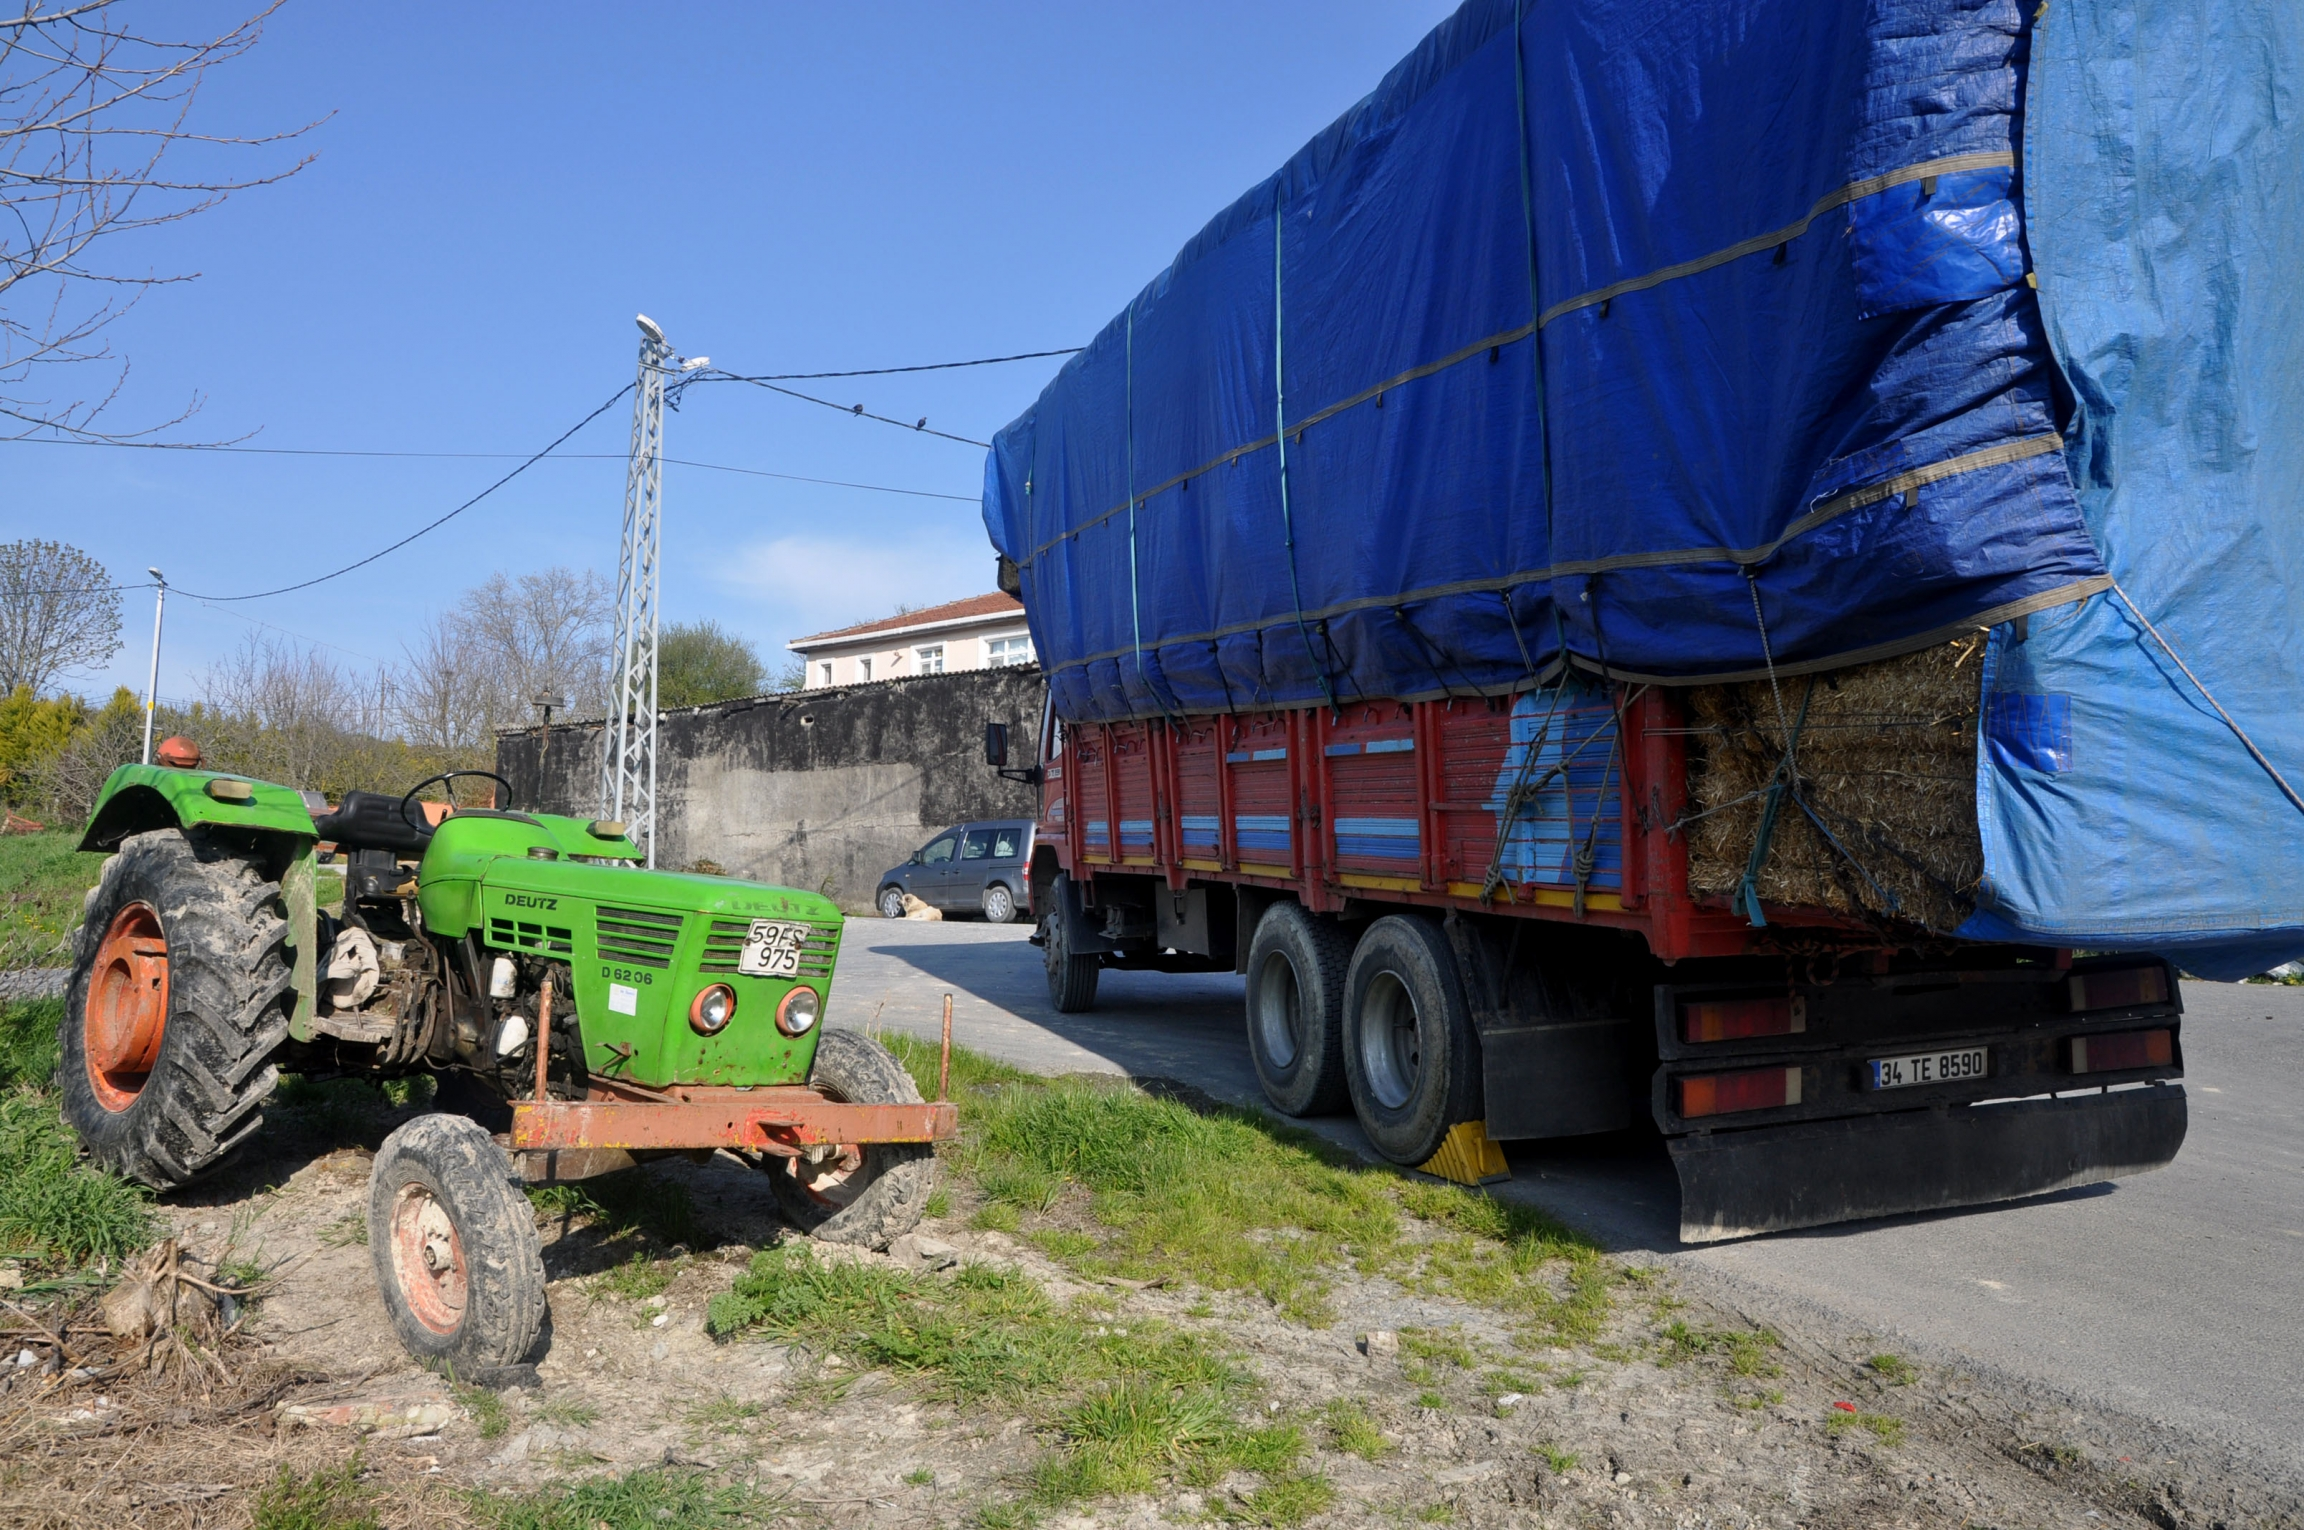 A truck with a blue cover arrives with hay, near a green tractor, on the side of the road.